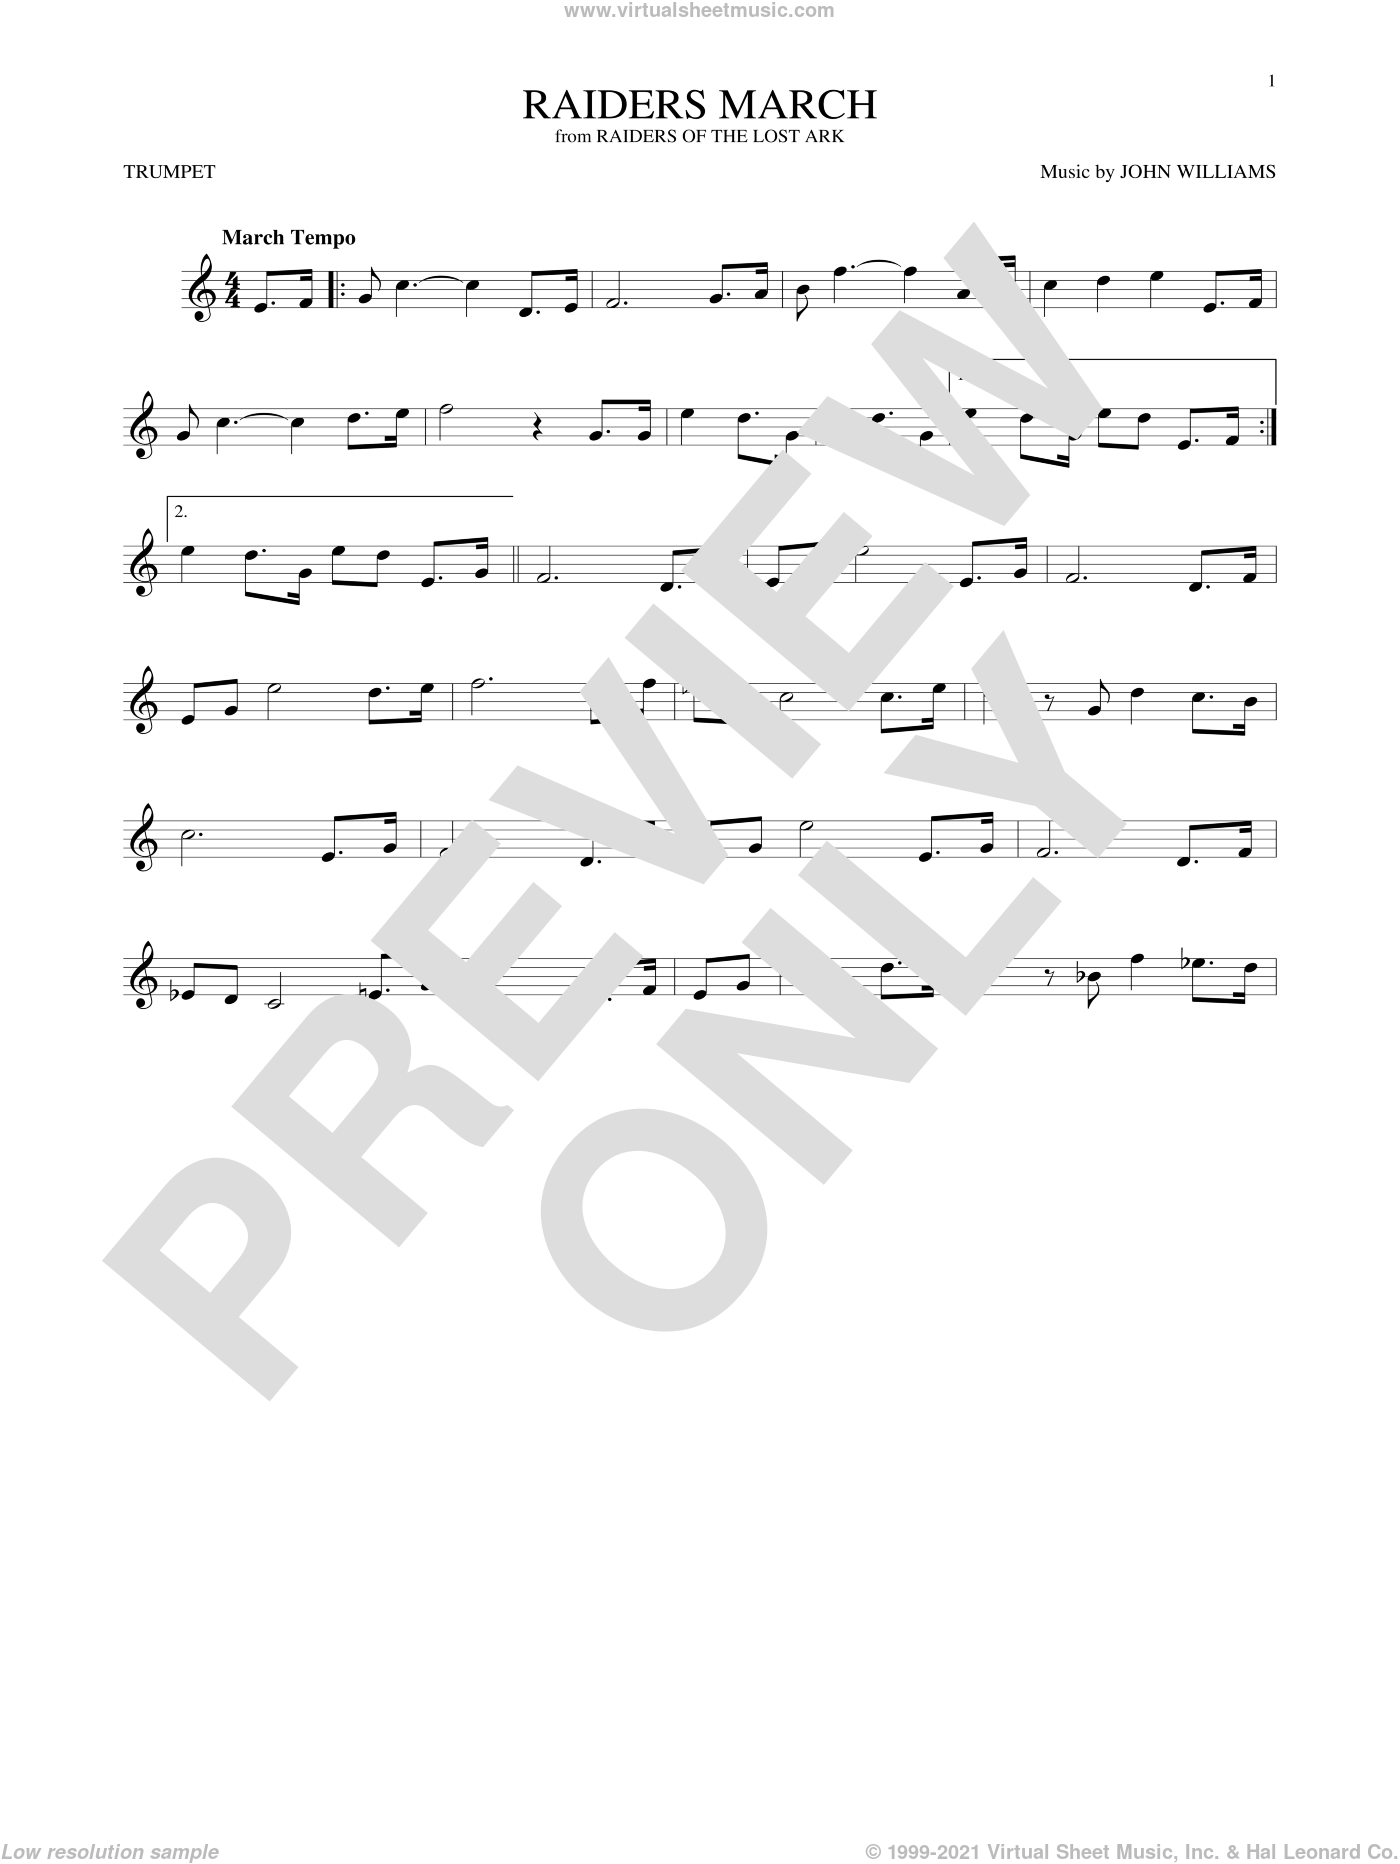 Raiders March sheet music for trumpet solo by John Williams, intermediate skill level